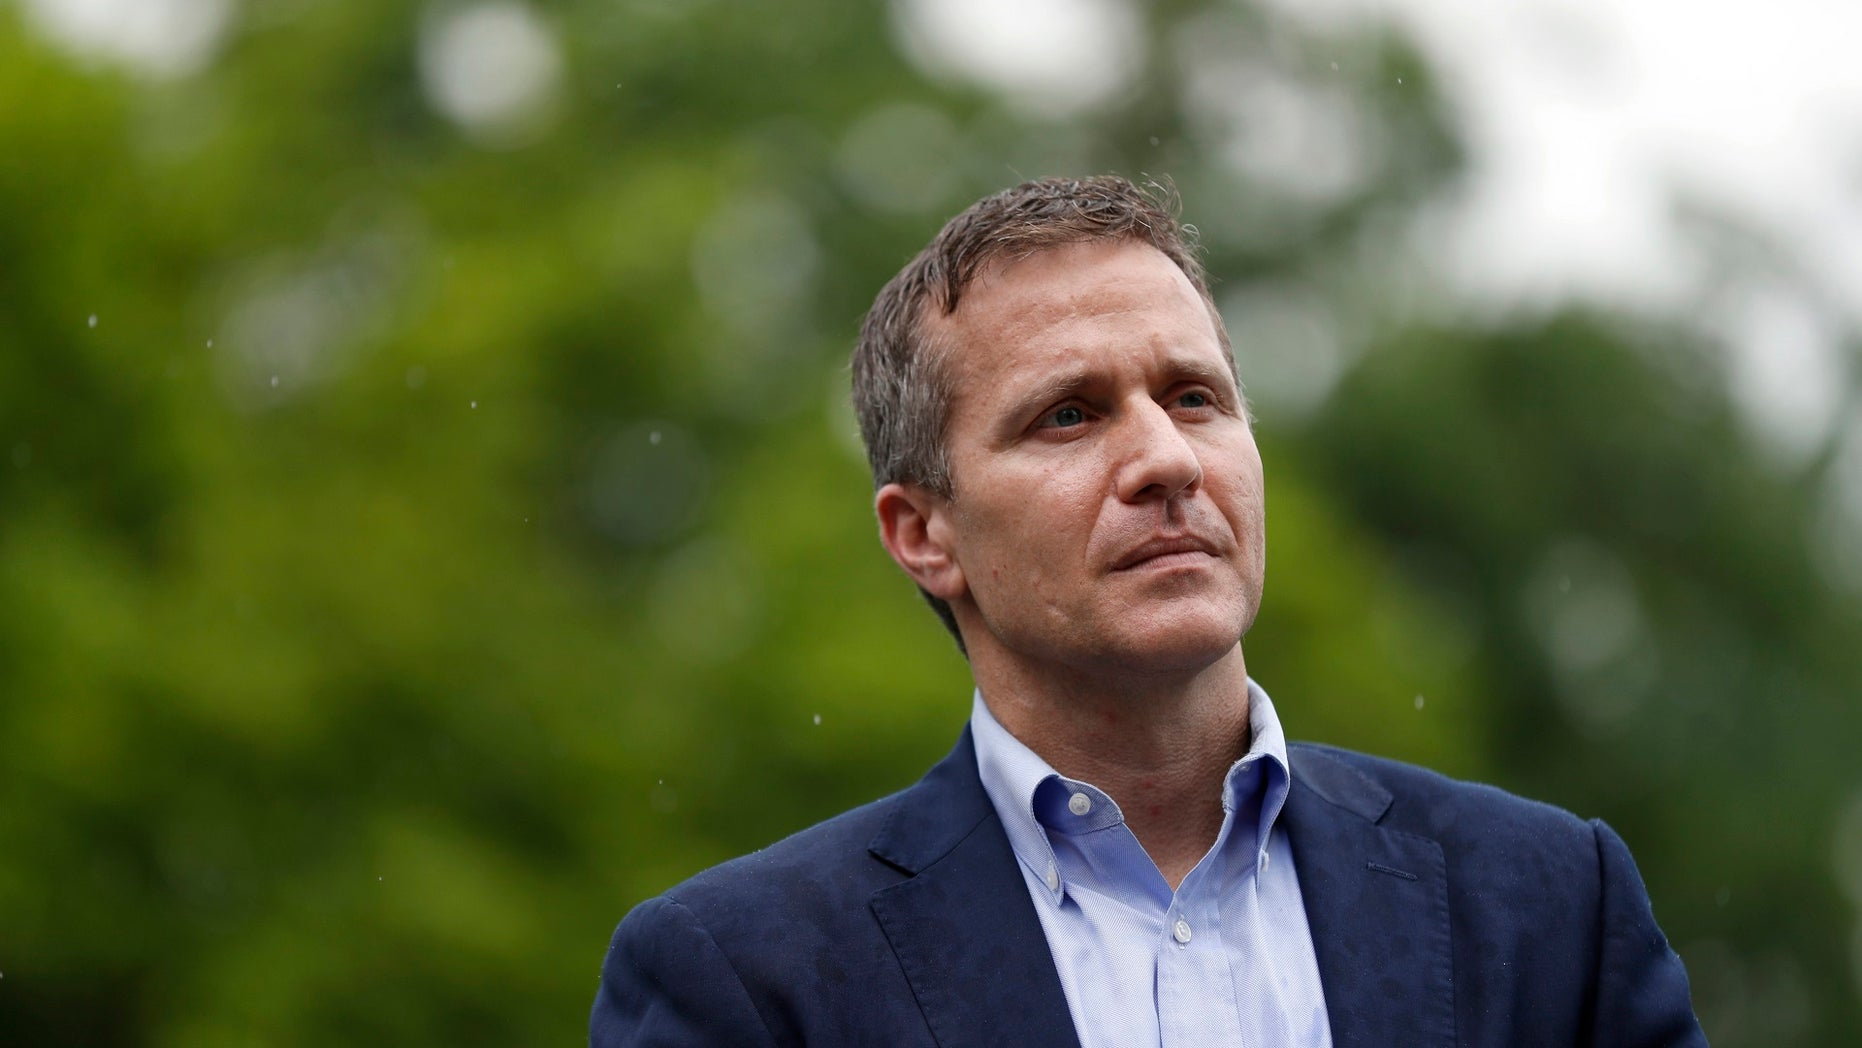 """The woman who accused Missouri Gov. Eric Greitens of becoming violent and engaging in non-consensual acts during an affair is sticking by her story, telling a local news outlet she hopes """"to heal."""""""